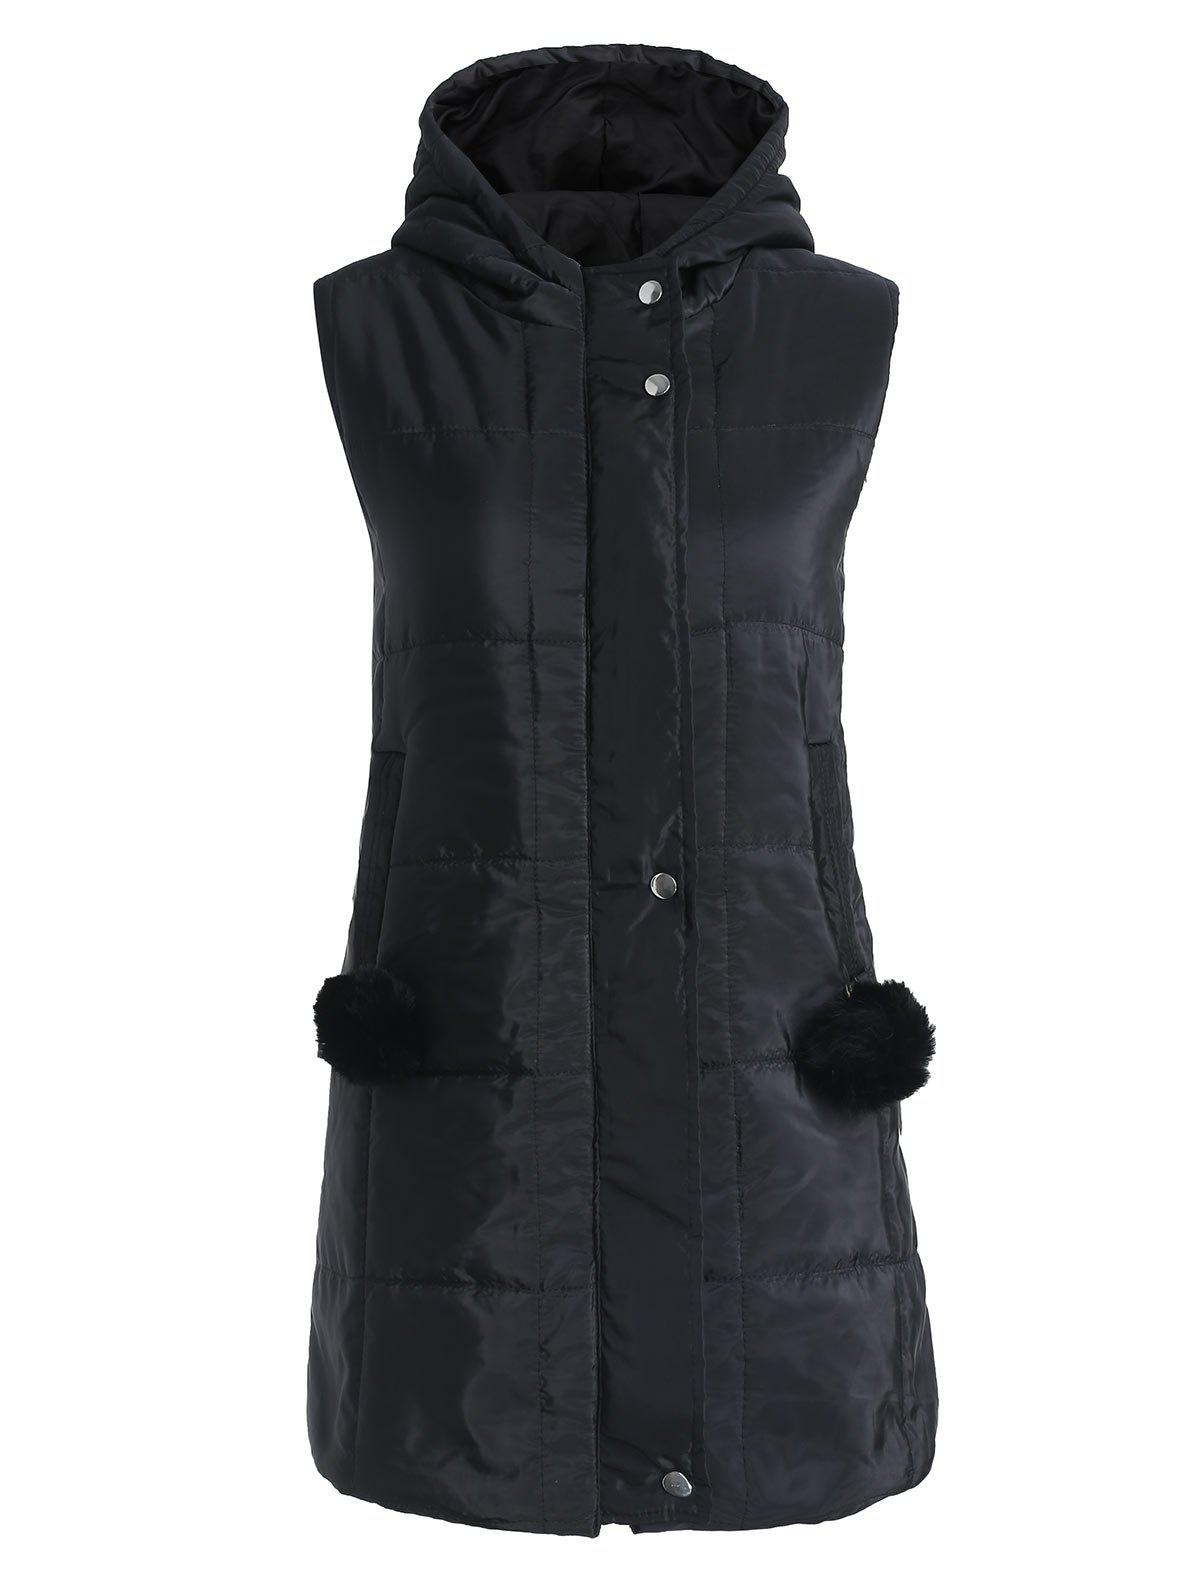 Long Gilet Rembourré Zip Up